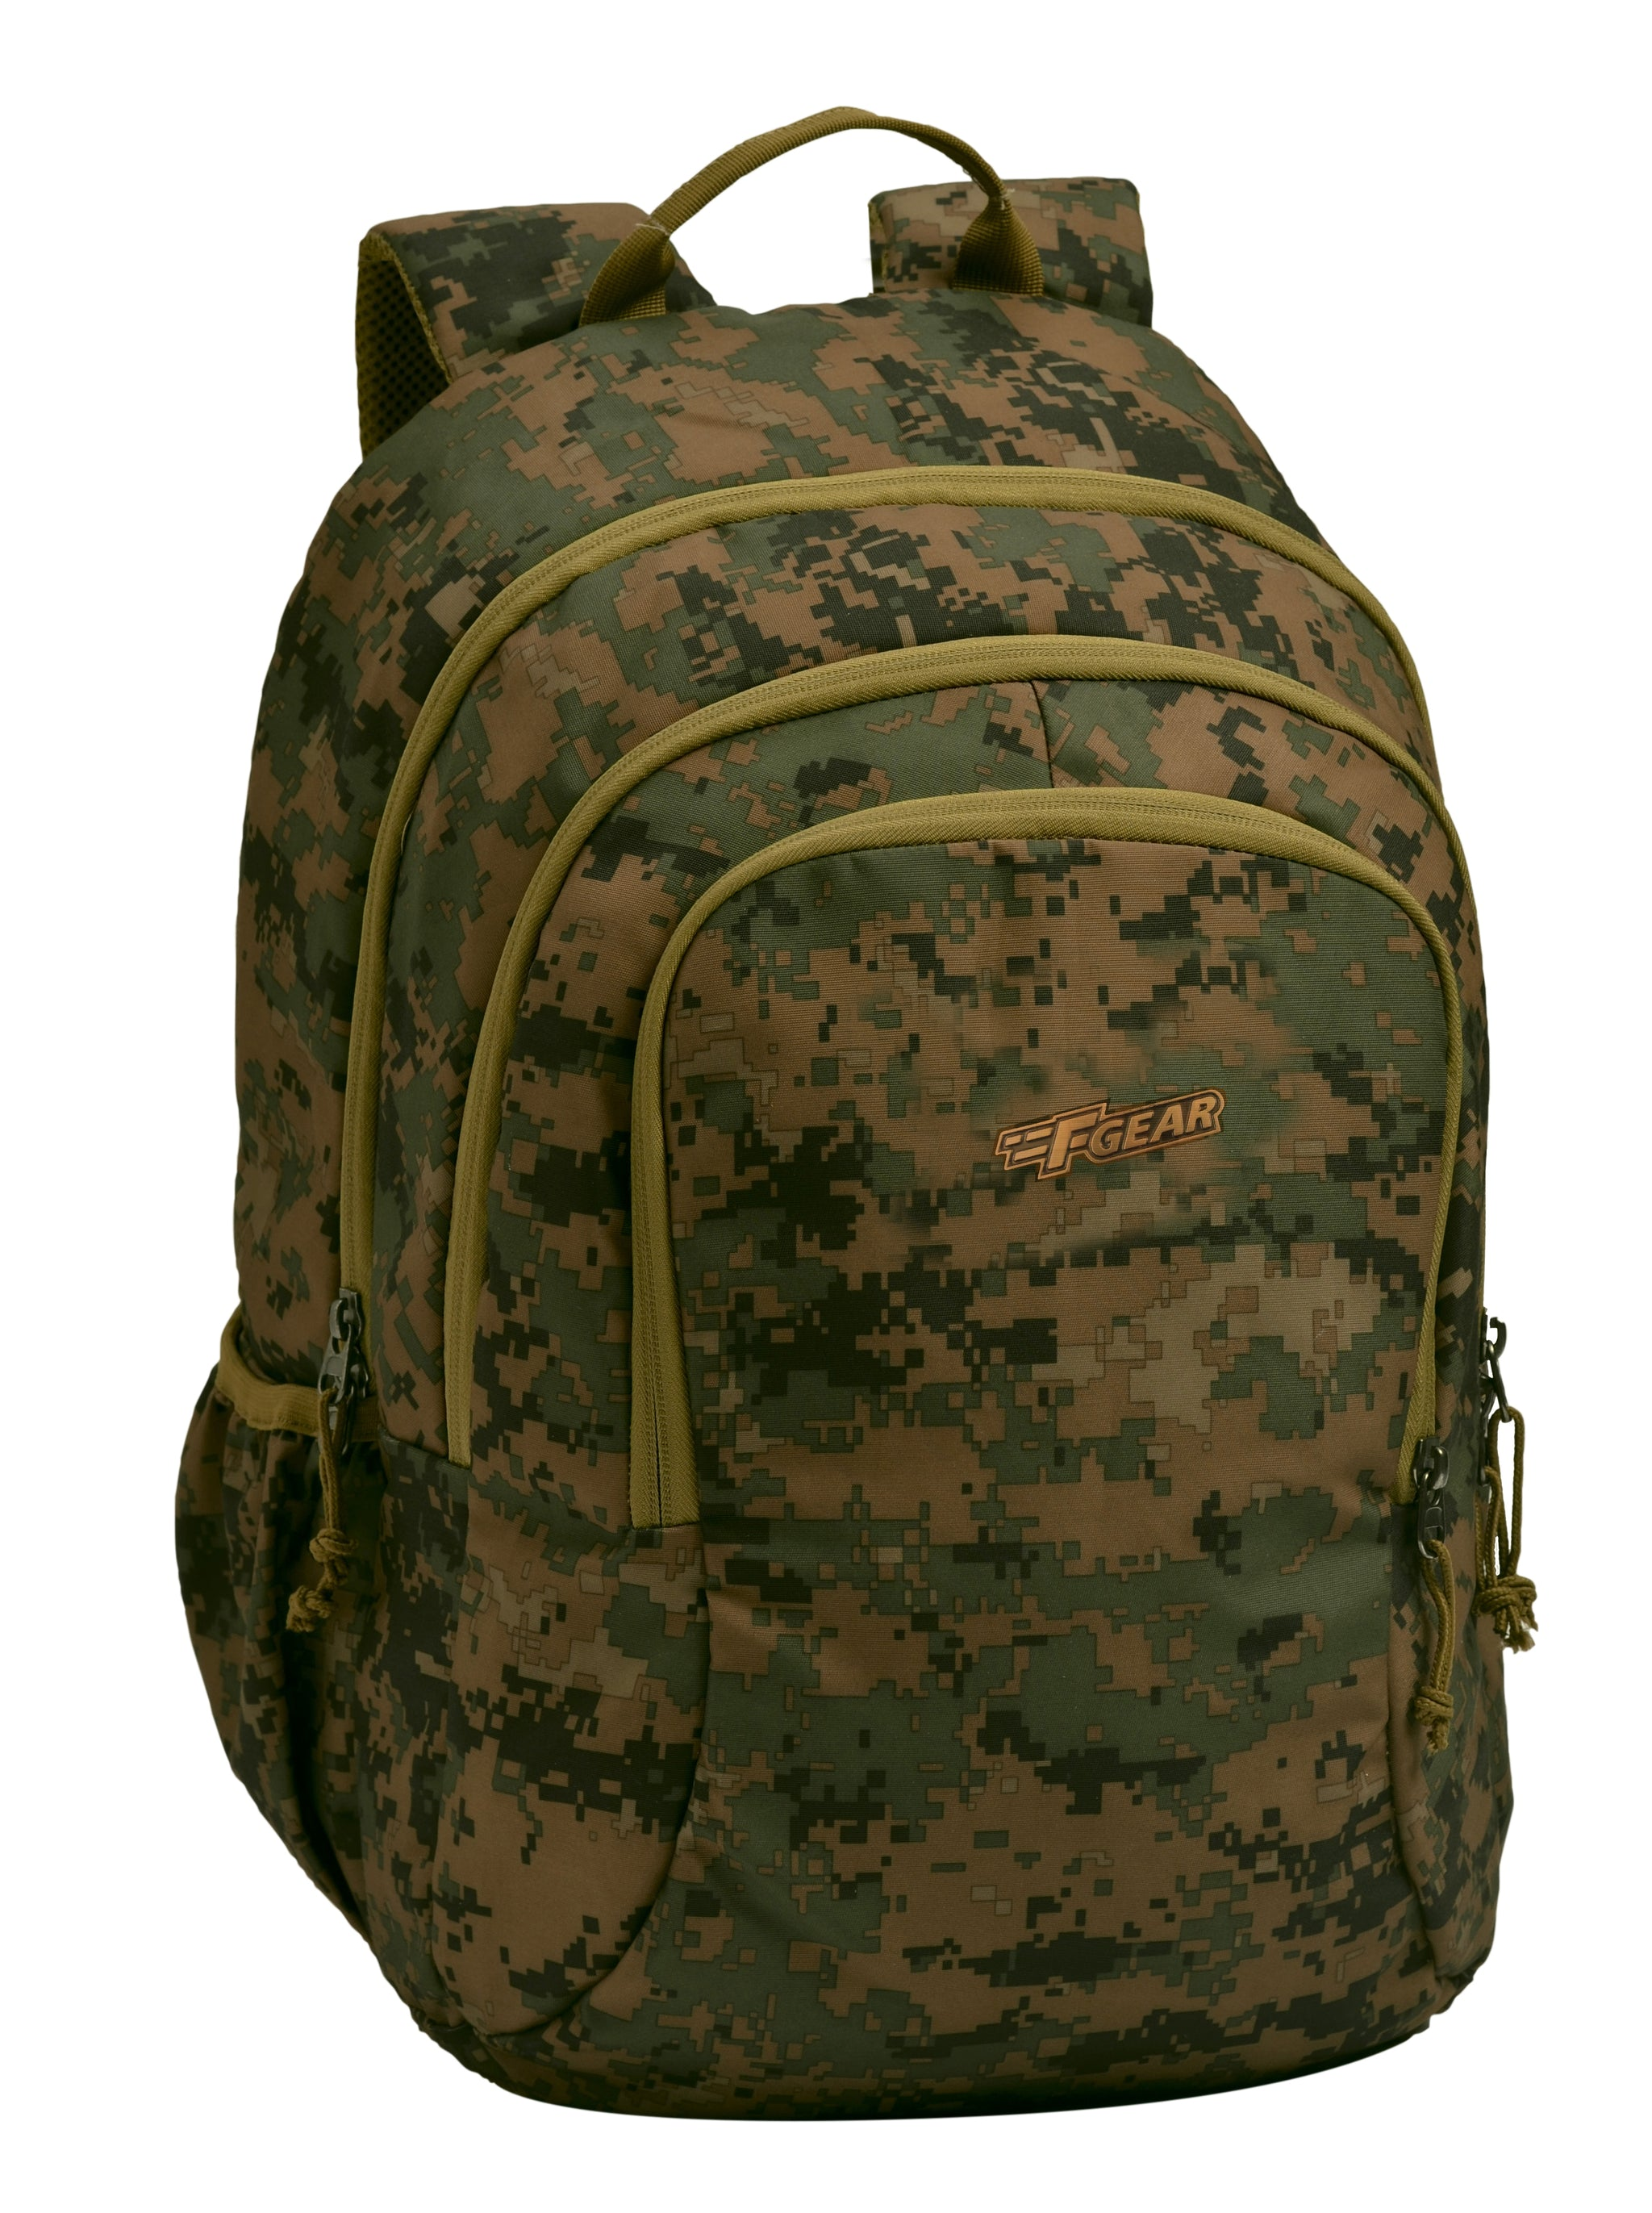 F Gear Military Crusader 30 Liter Backpack (Marpat WL Digital Camo)